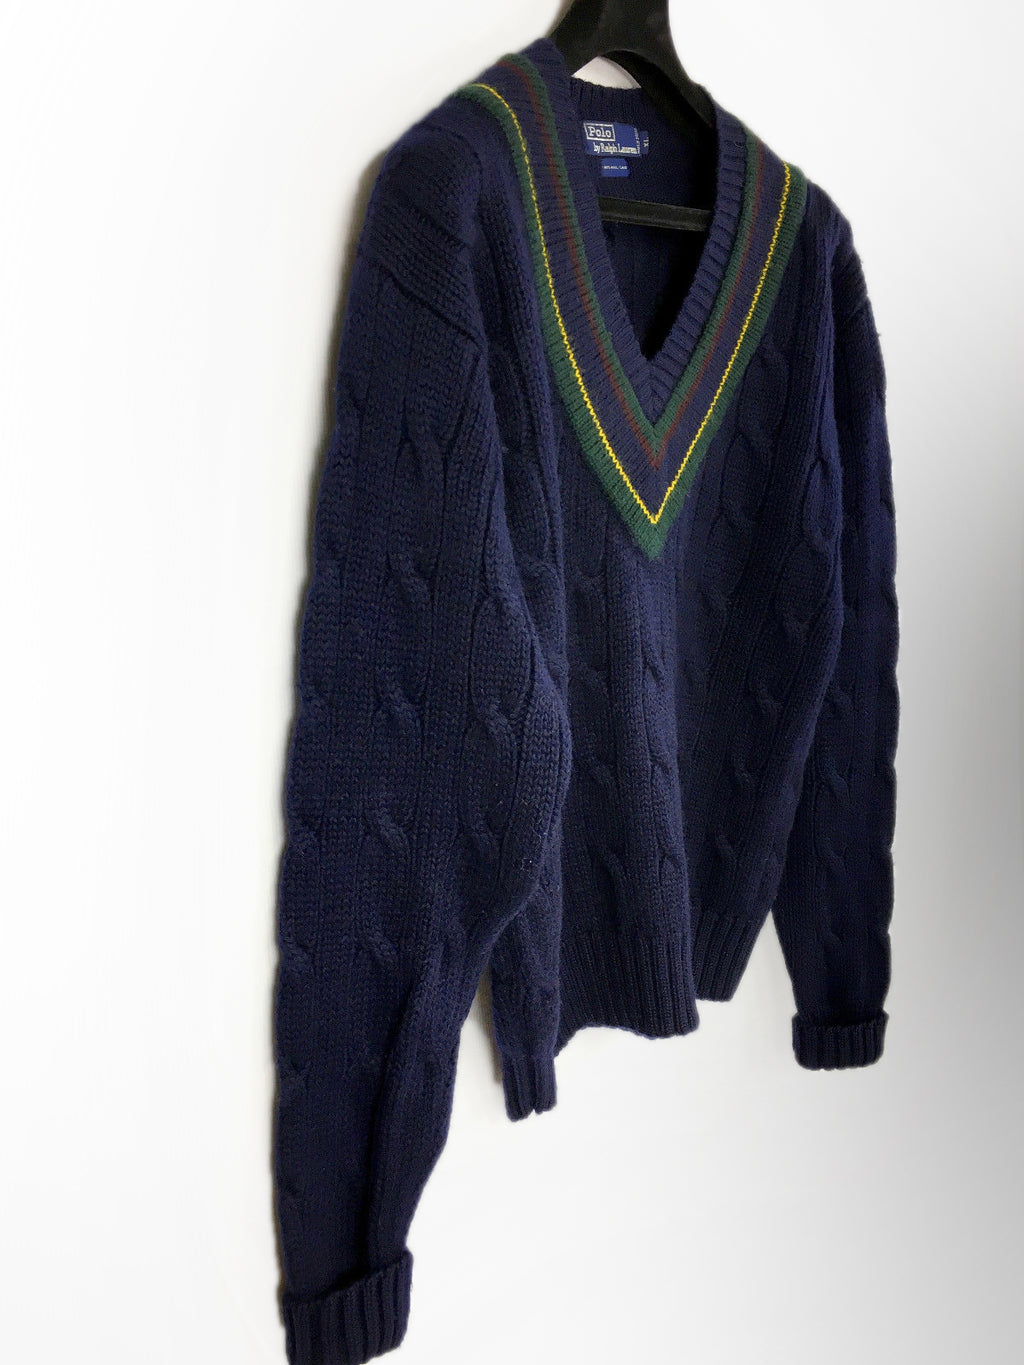 POLO by RALPH LAUREN Chunky Cable Knit Wool V-neck Sweater, XL - secondfirst